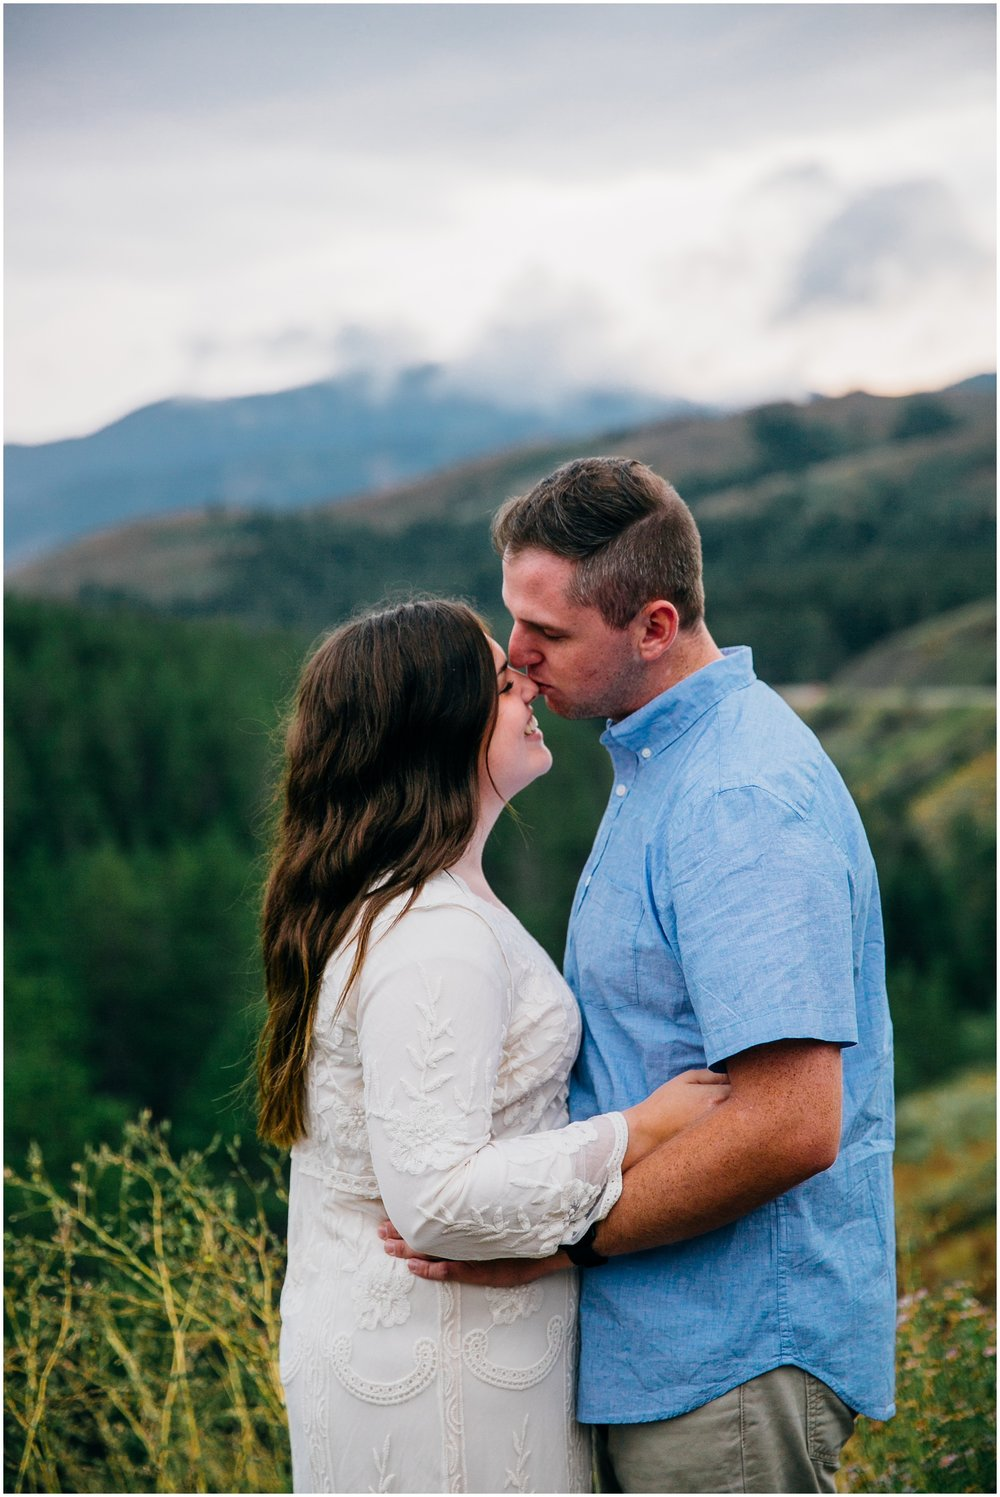 swan-valley-jackson-wyoming-engagements-idaho-colorado-wyoming-wedding-photographer_0914.jpg